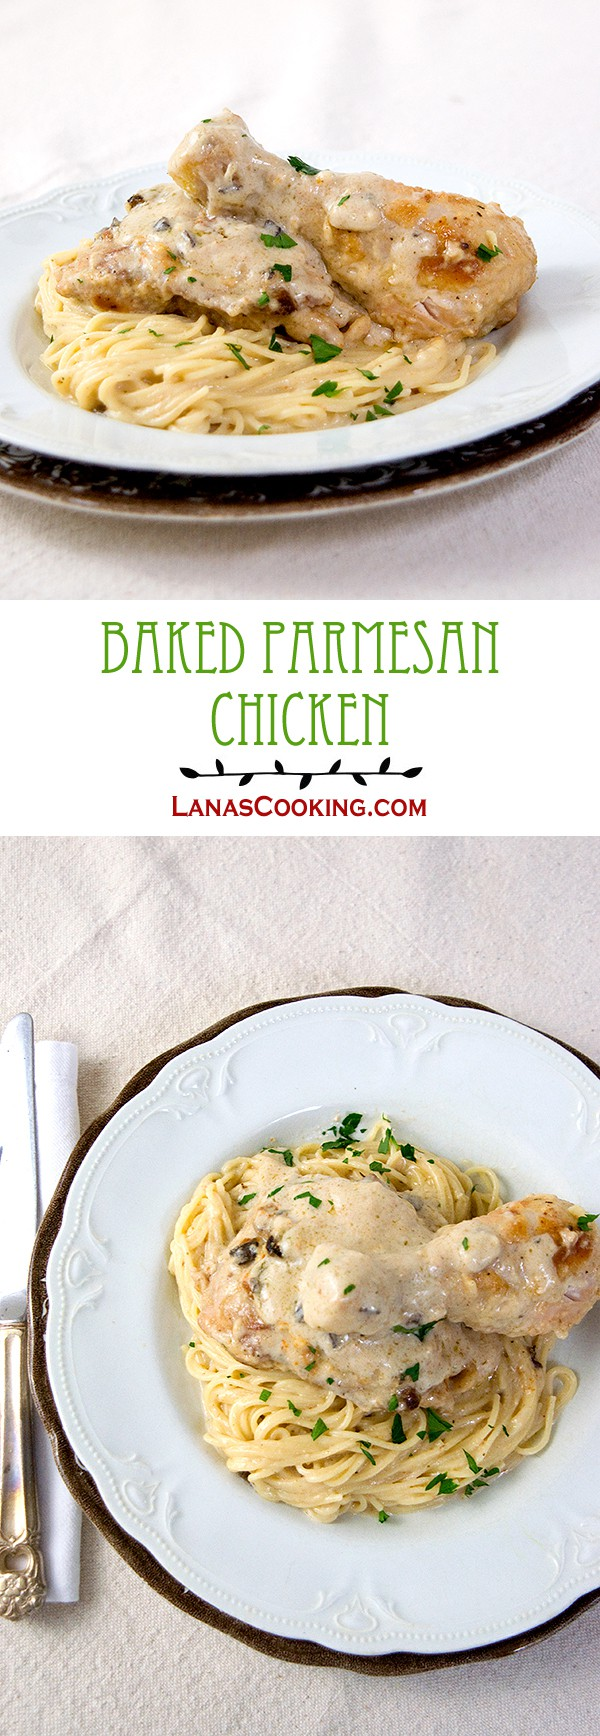 Baked Parmesan Chicken - chicken baked with a creamy mushroom and Parmesan sauce, served over angel hair pasta from @NevrEnoughThyme http://www.lanascooking.com/baked-parmesan-chicken